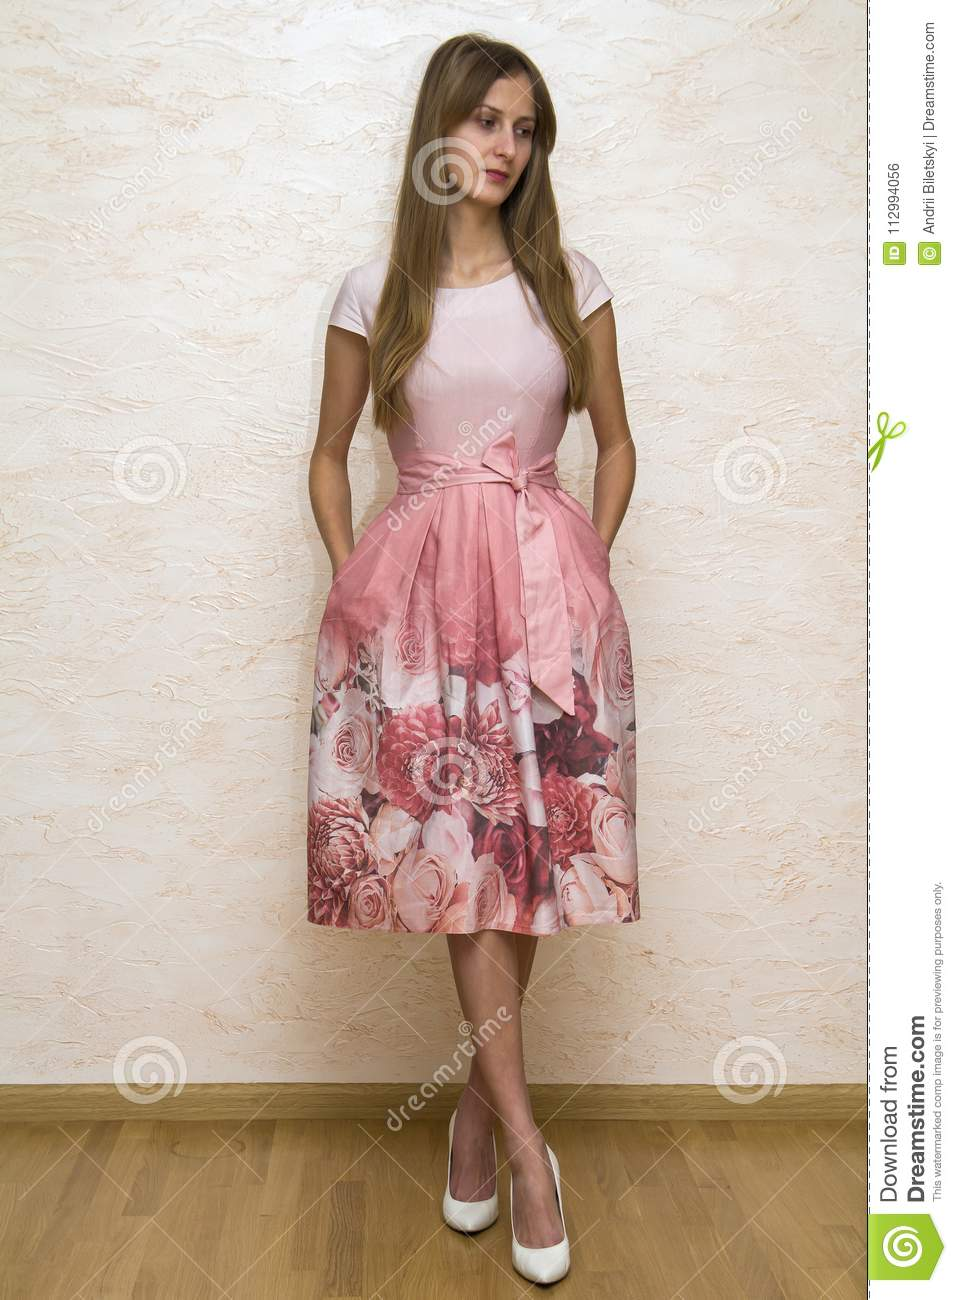 Full Length Portrait Of A Beautiful Young Happy Confident Girl With Long Blond Hair Posing In Summer Dress With Pink Floral Design Stock Photo Image Of Fullbody Female 112994056